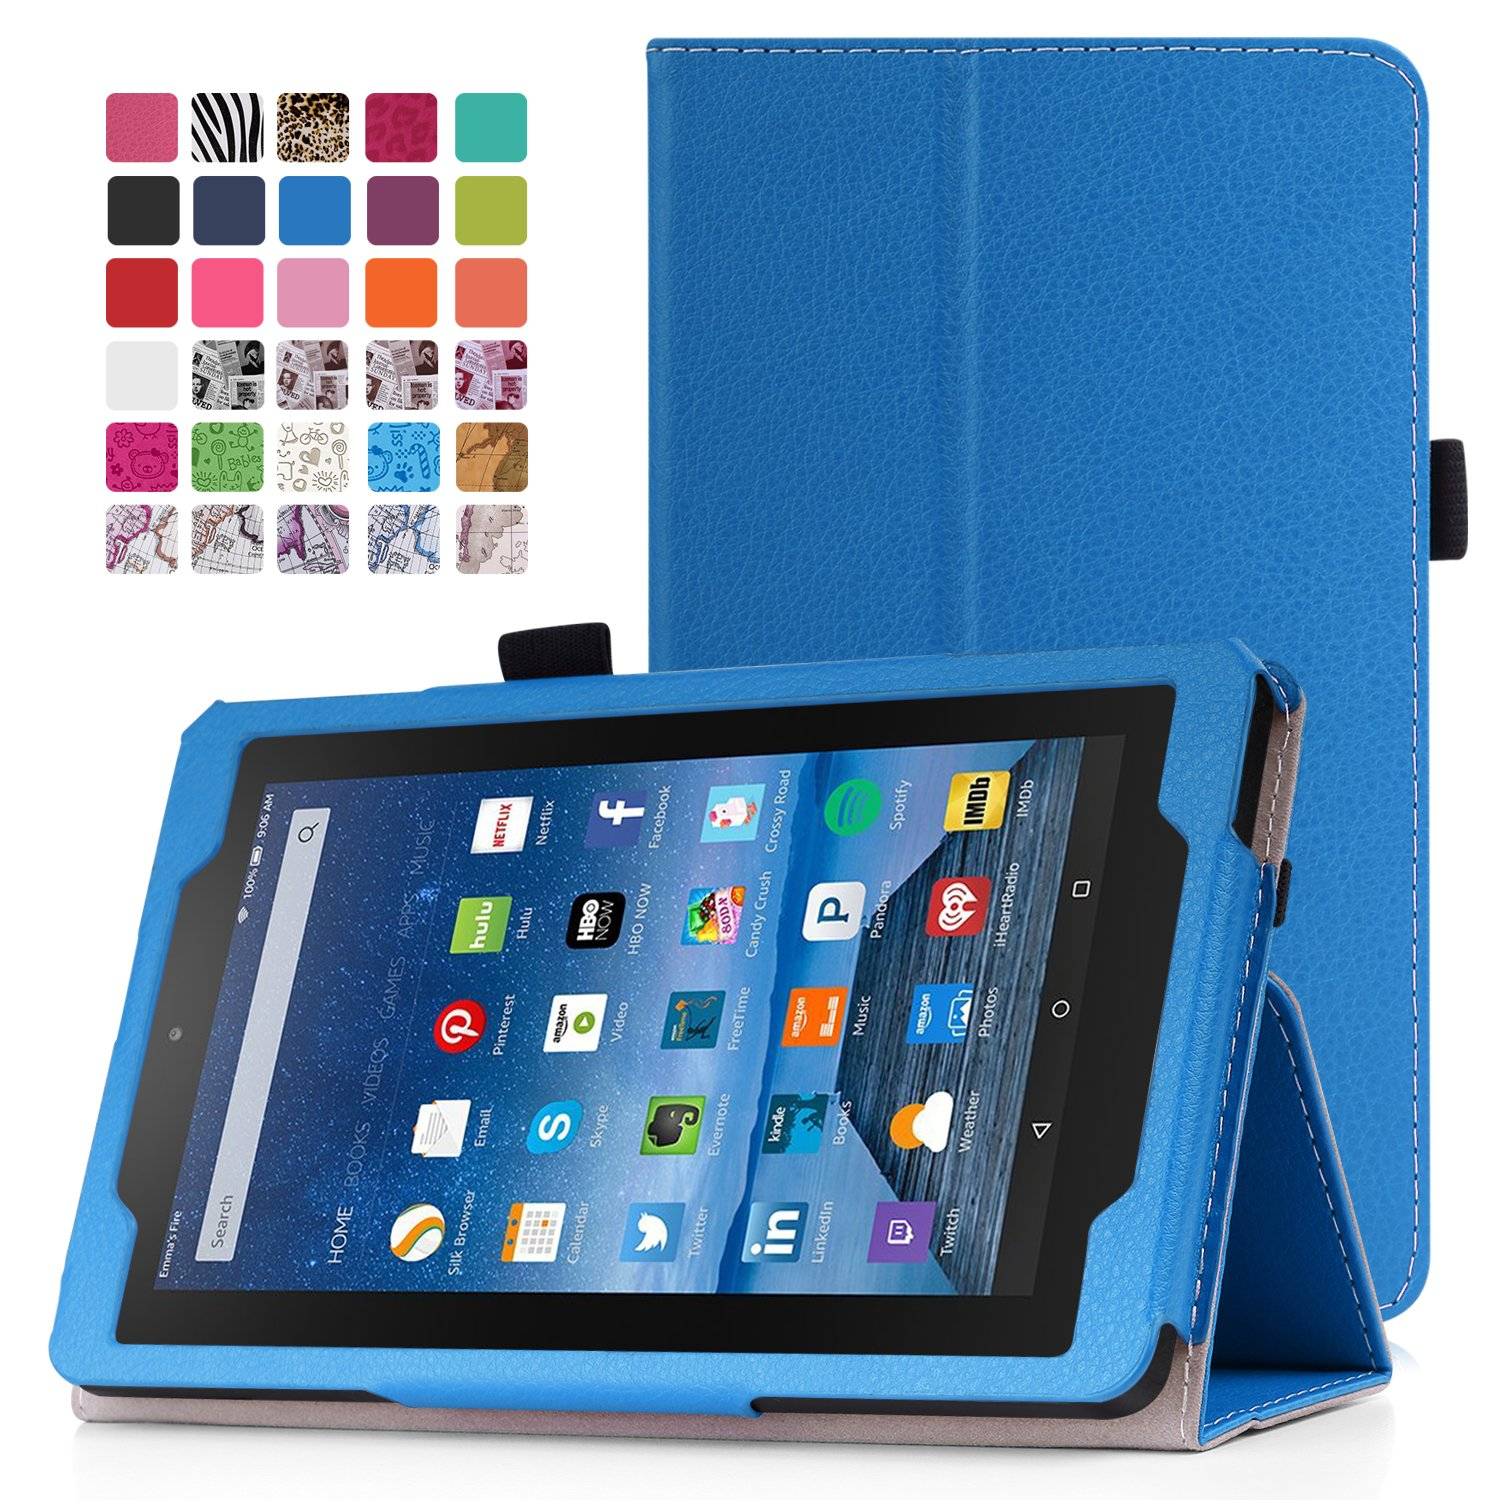 MoKo Fire 7 2015 Case - Slim Folding Cover for Amazon Fire Tablet (7 inch Display - 5th Generation, 2015 Release Only), BLUE